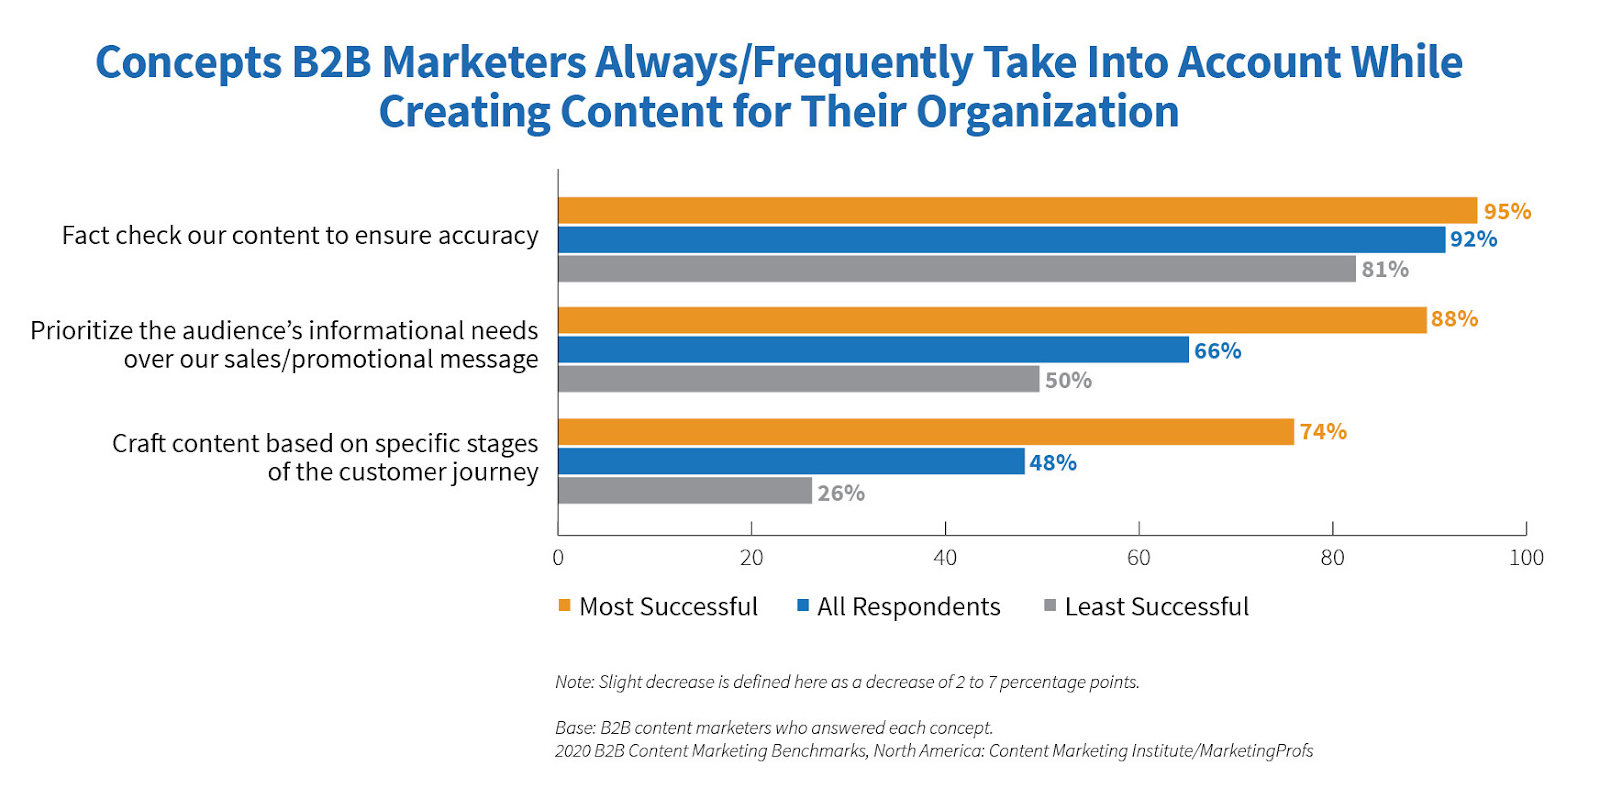 Concepts that B2B marketers take into account while creating content for their organization